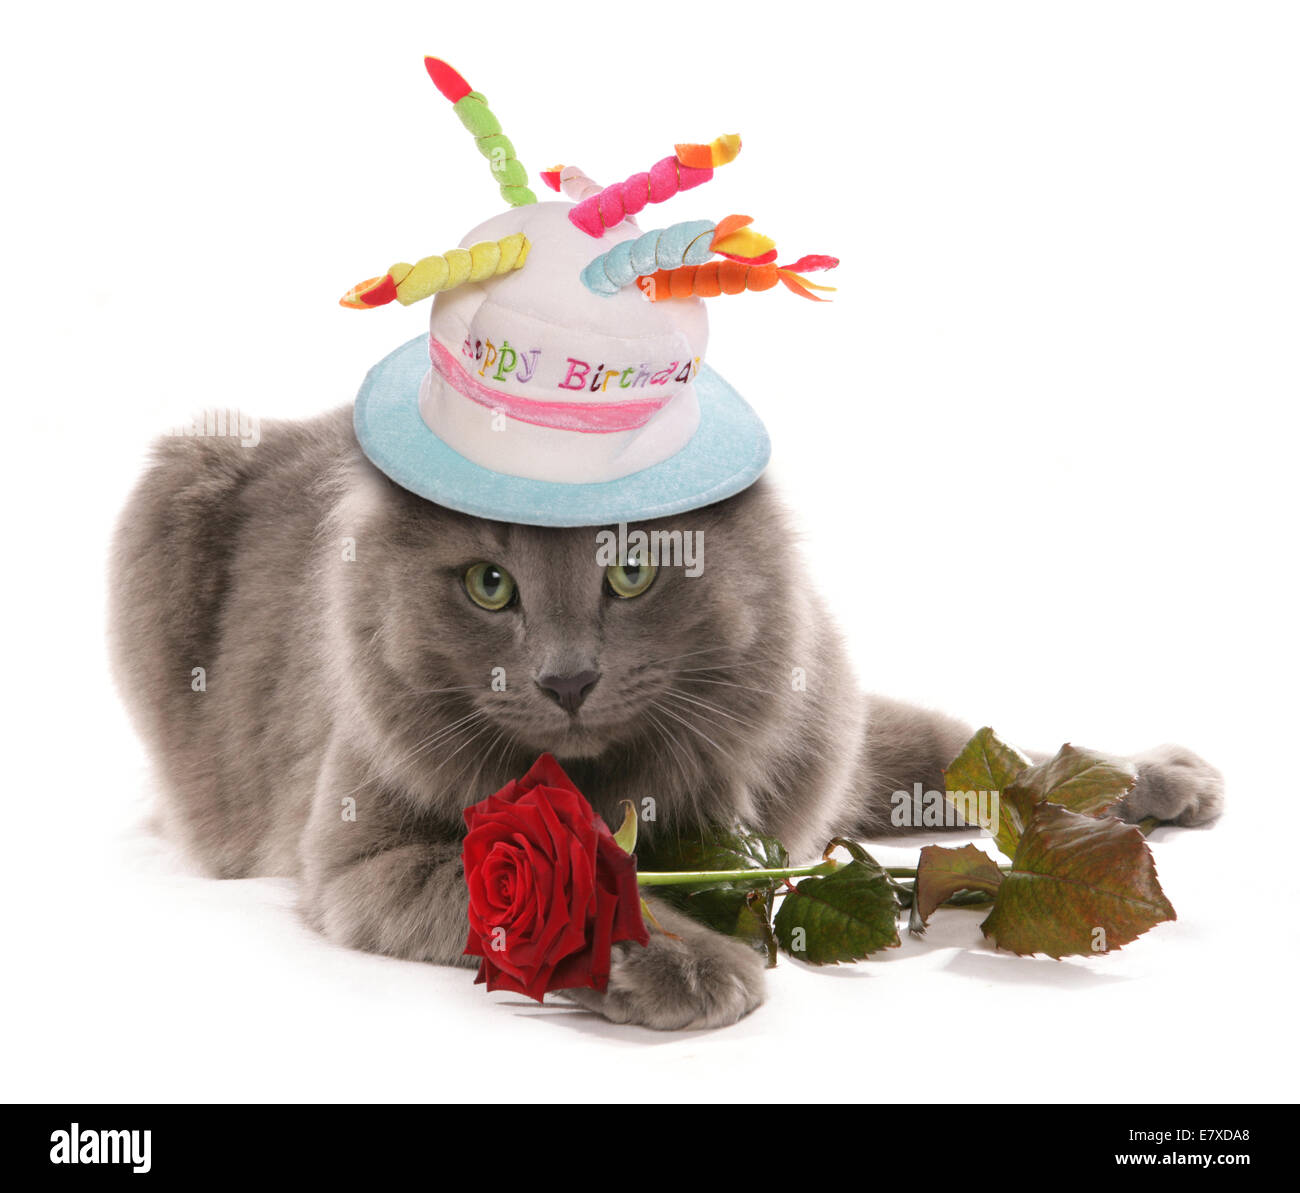 Cat With Rose And Birthday Hat Cutout